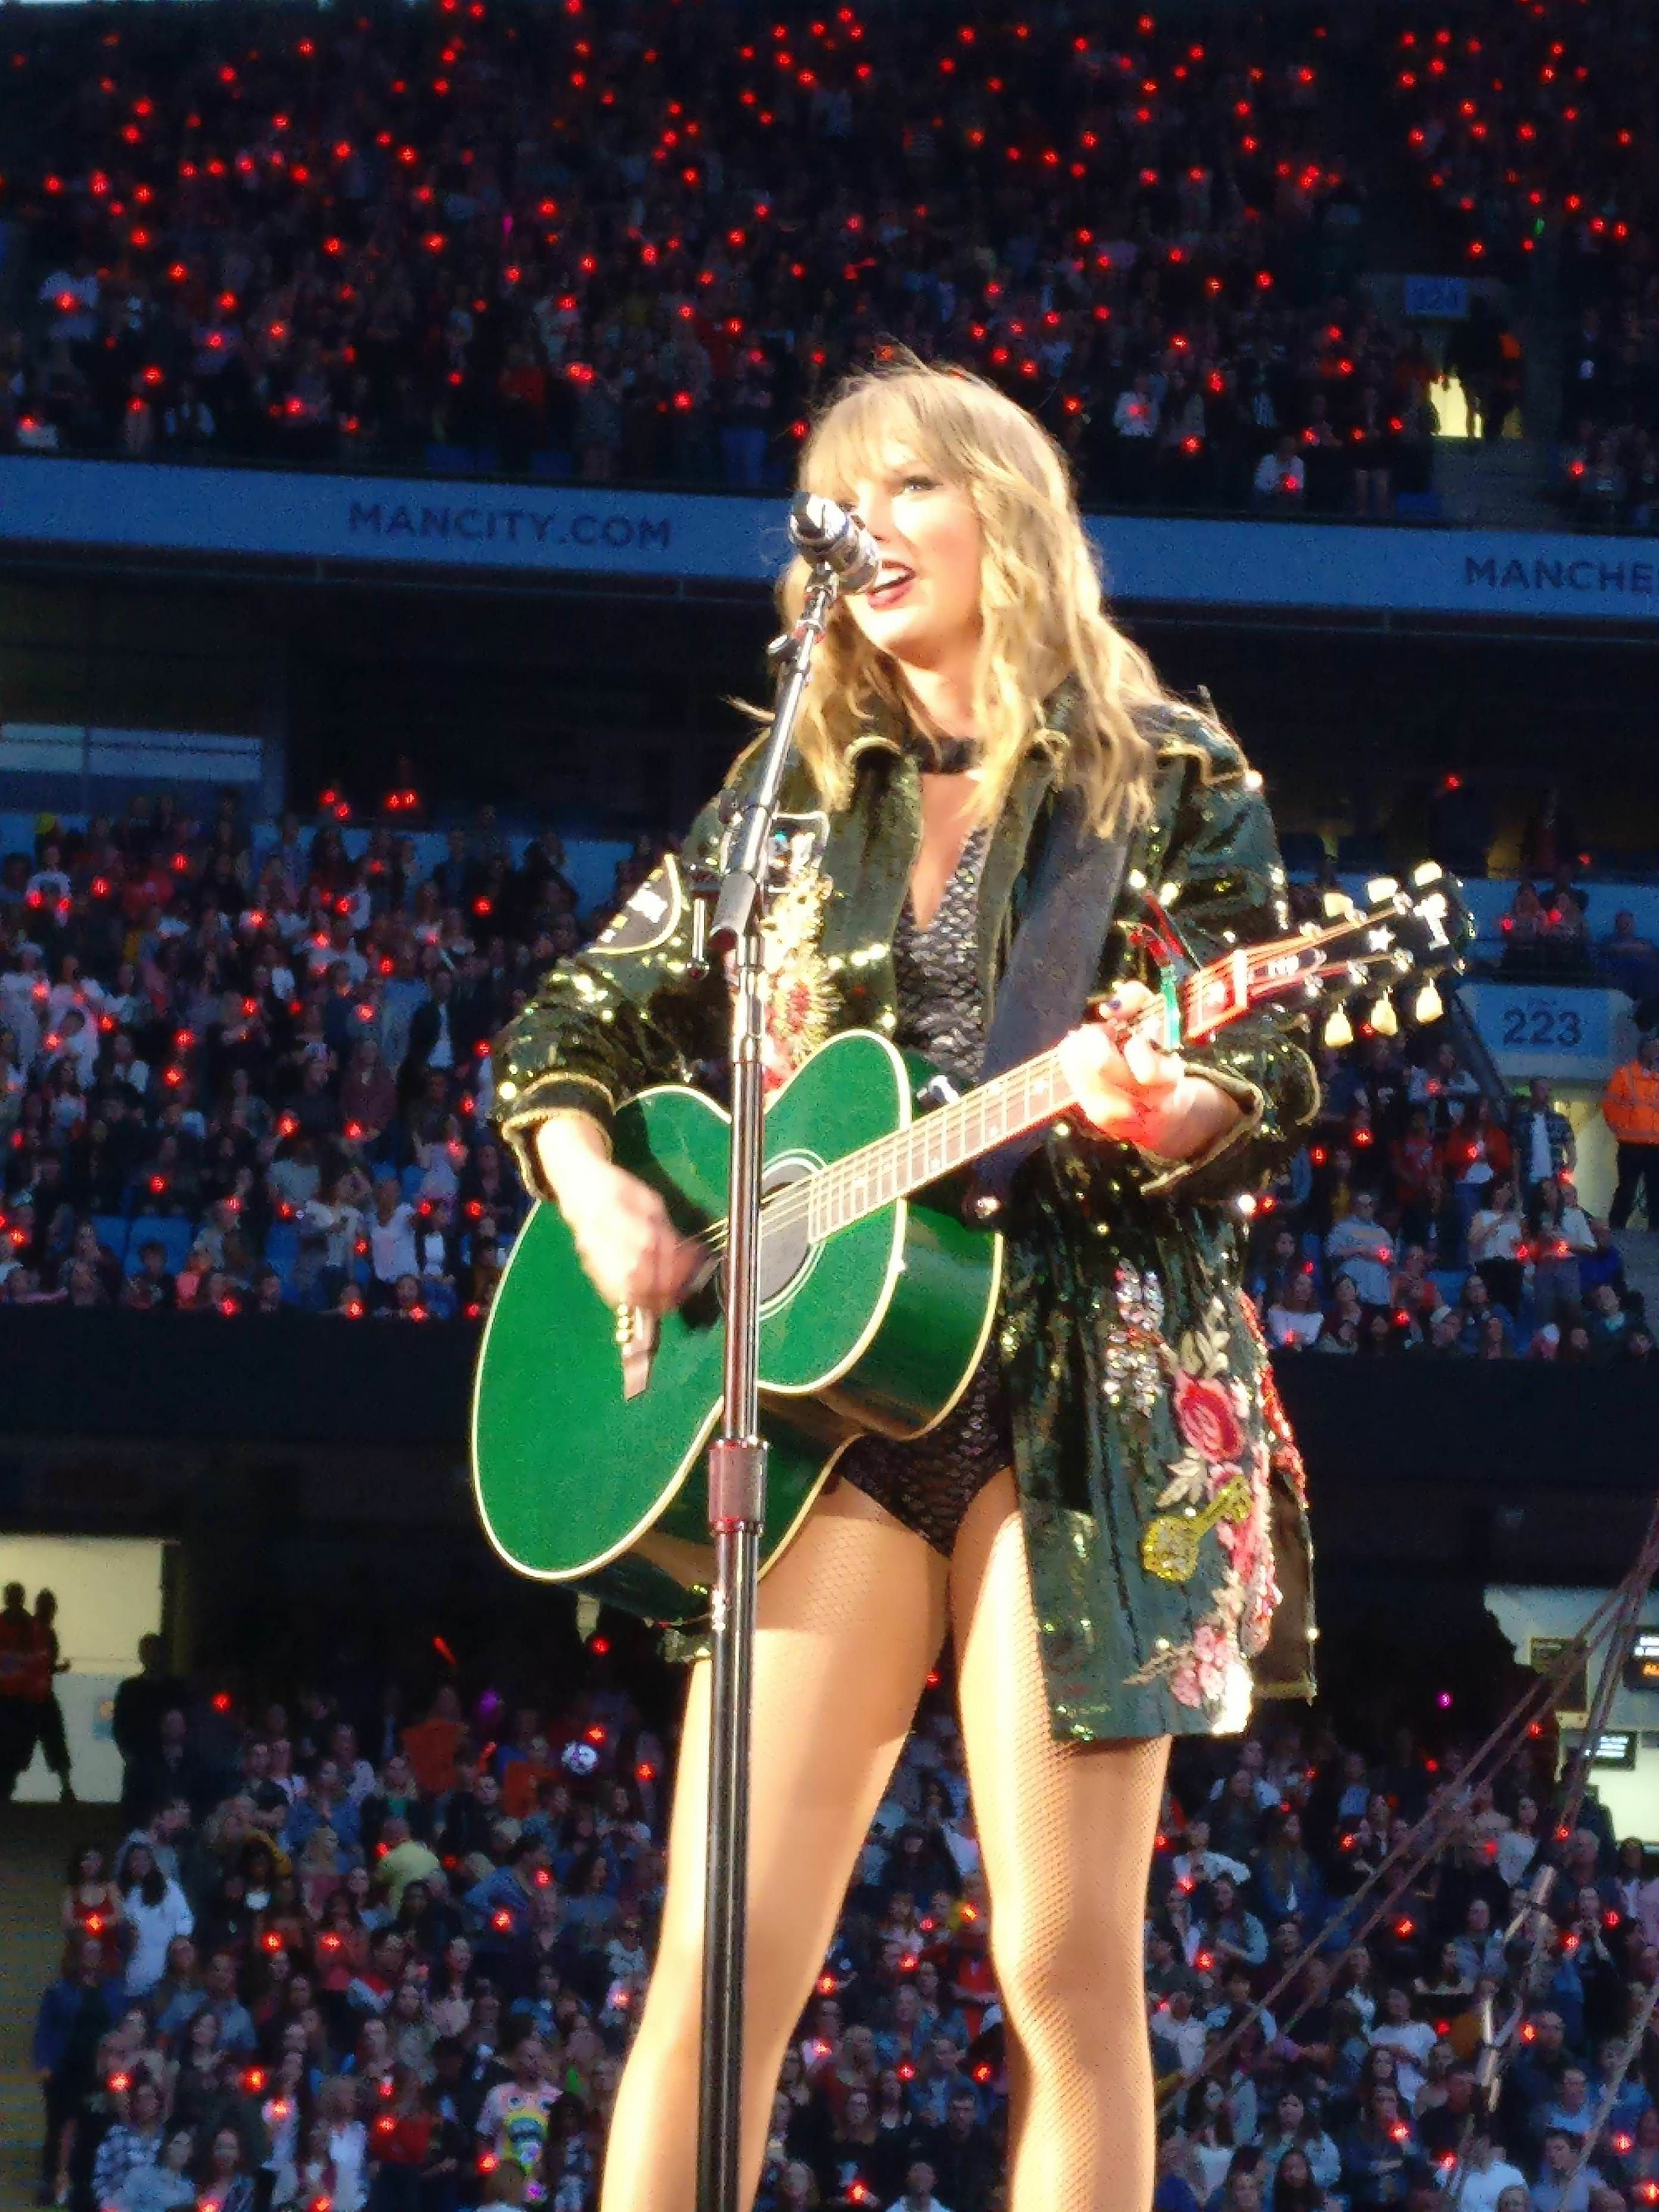 taylor swift reputation tour 2019 - 28 images - taylor ...